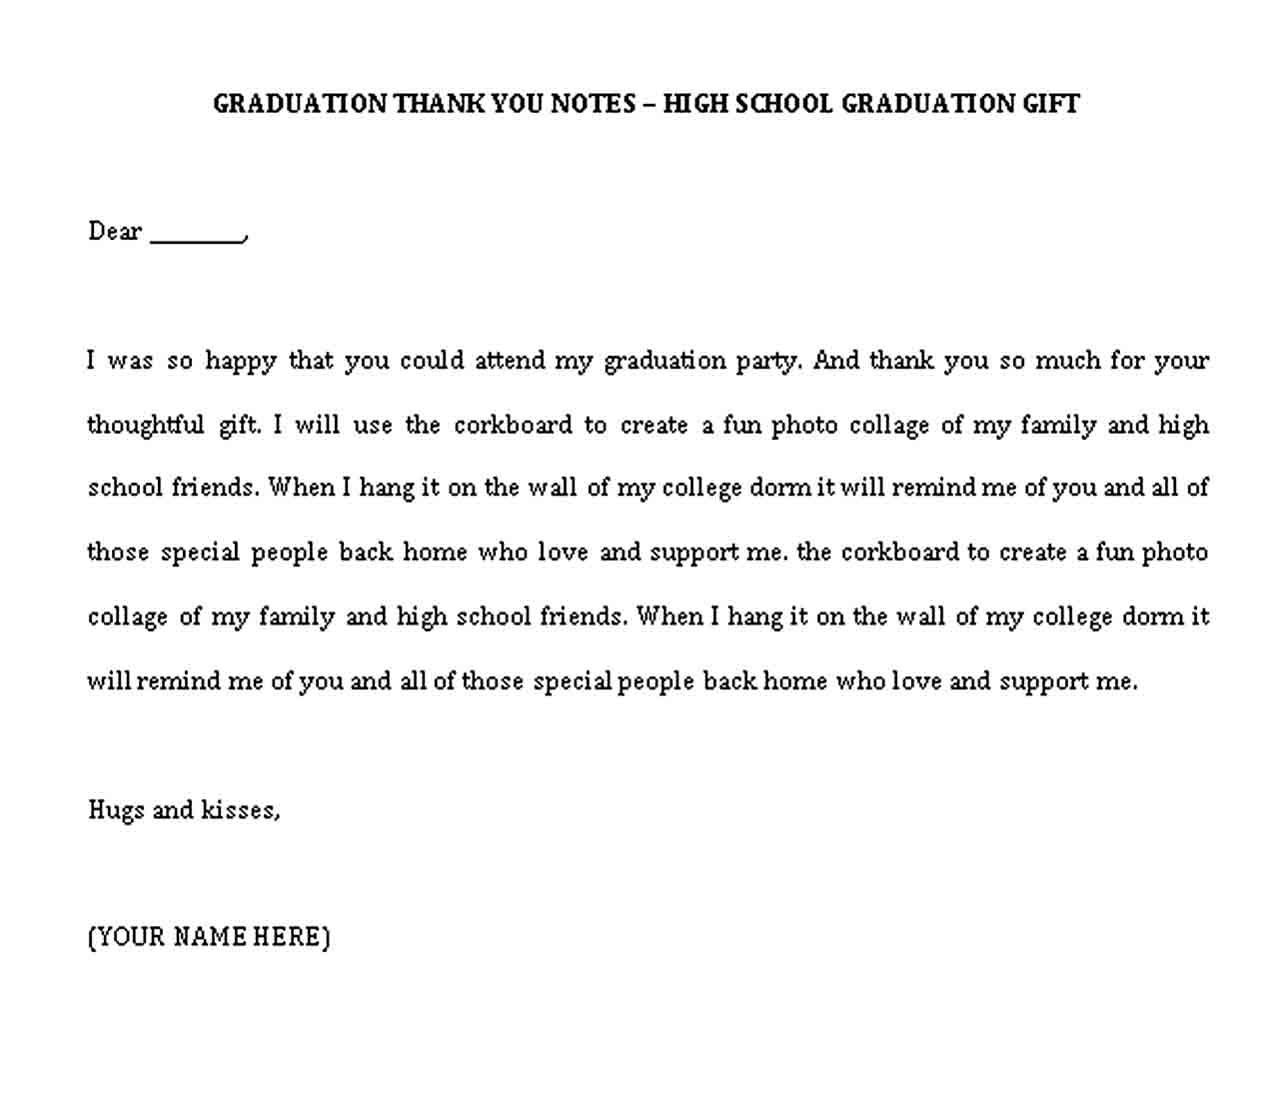 Graduation Thank You Note Thank You Card Examples Thank You Note Template Thank You Notes